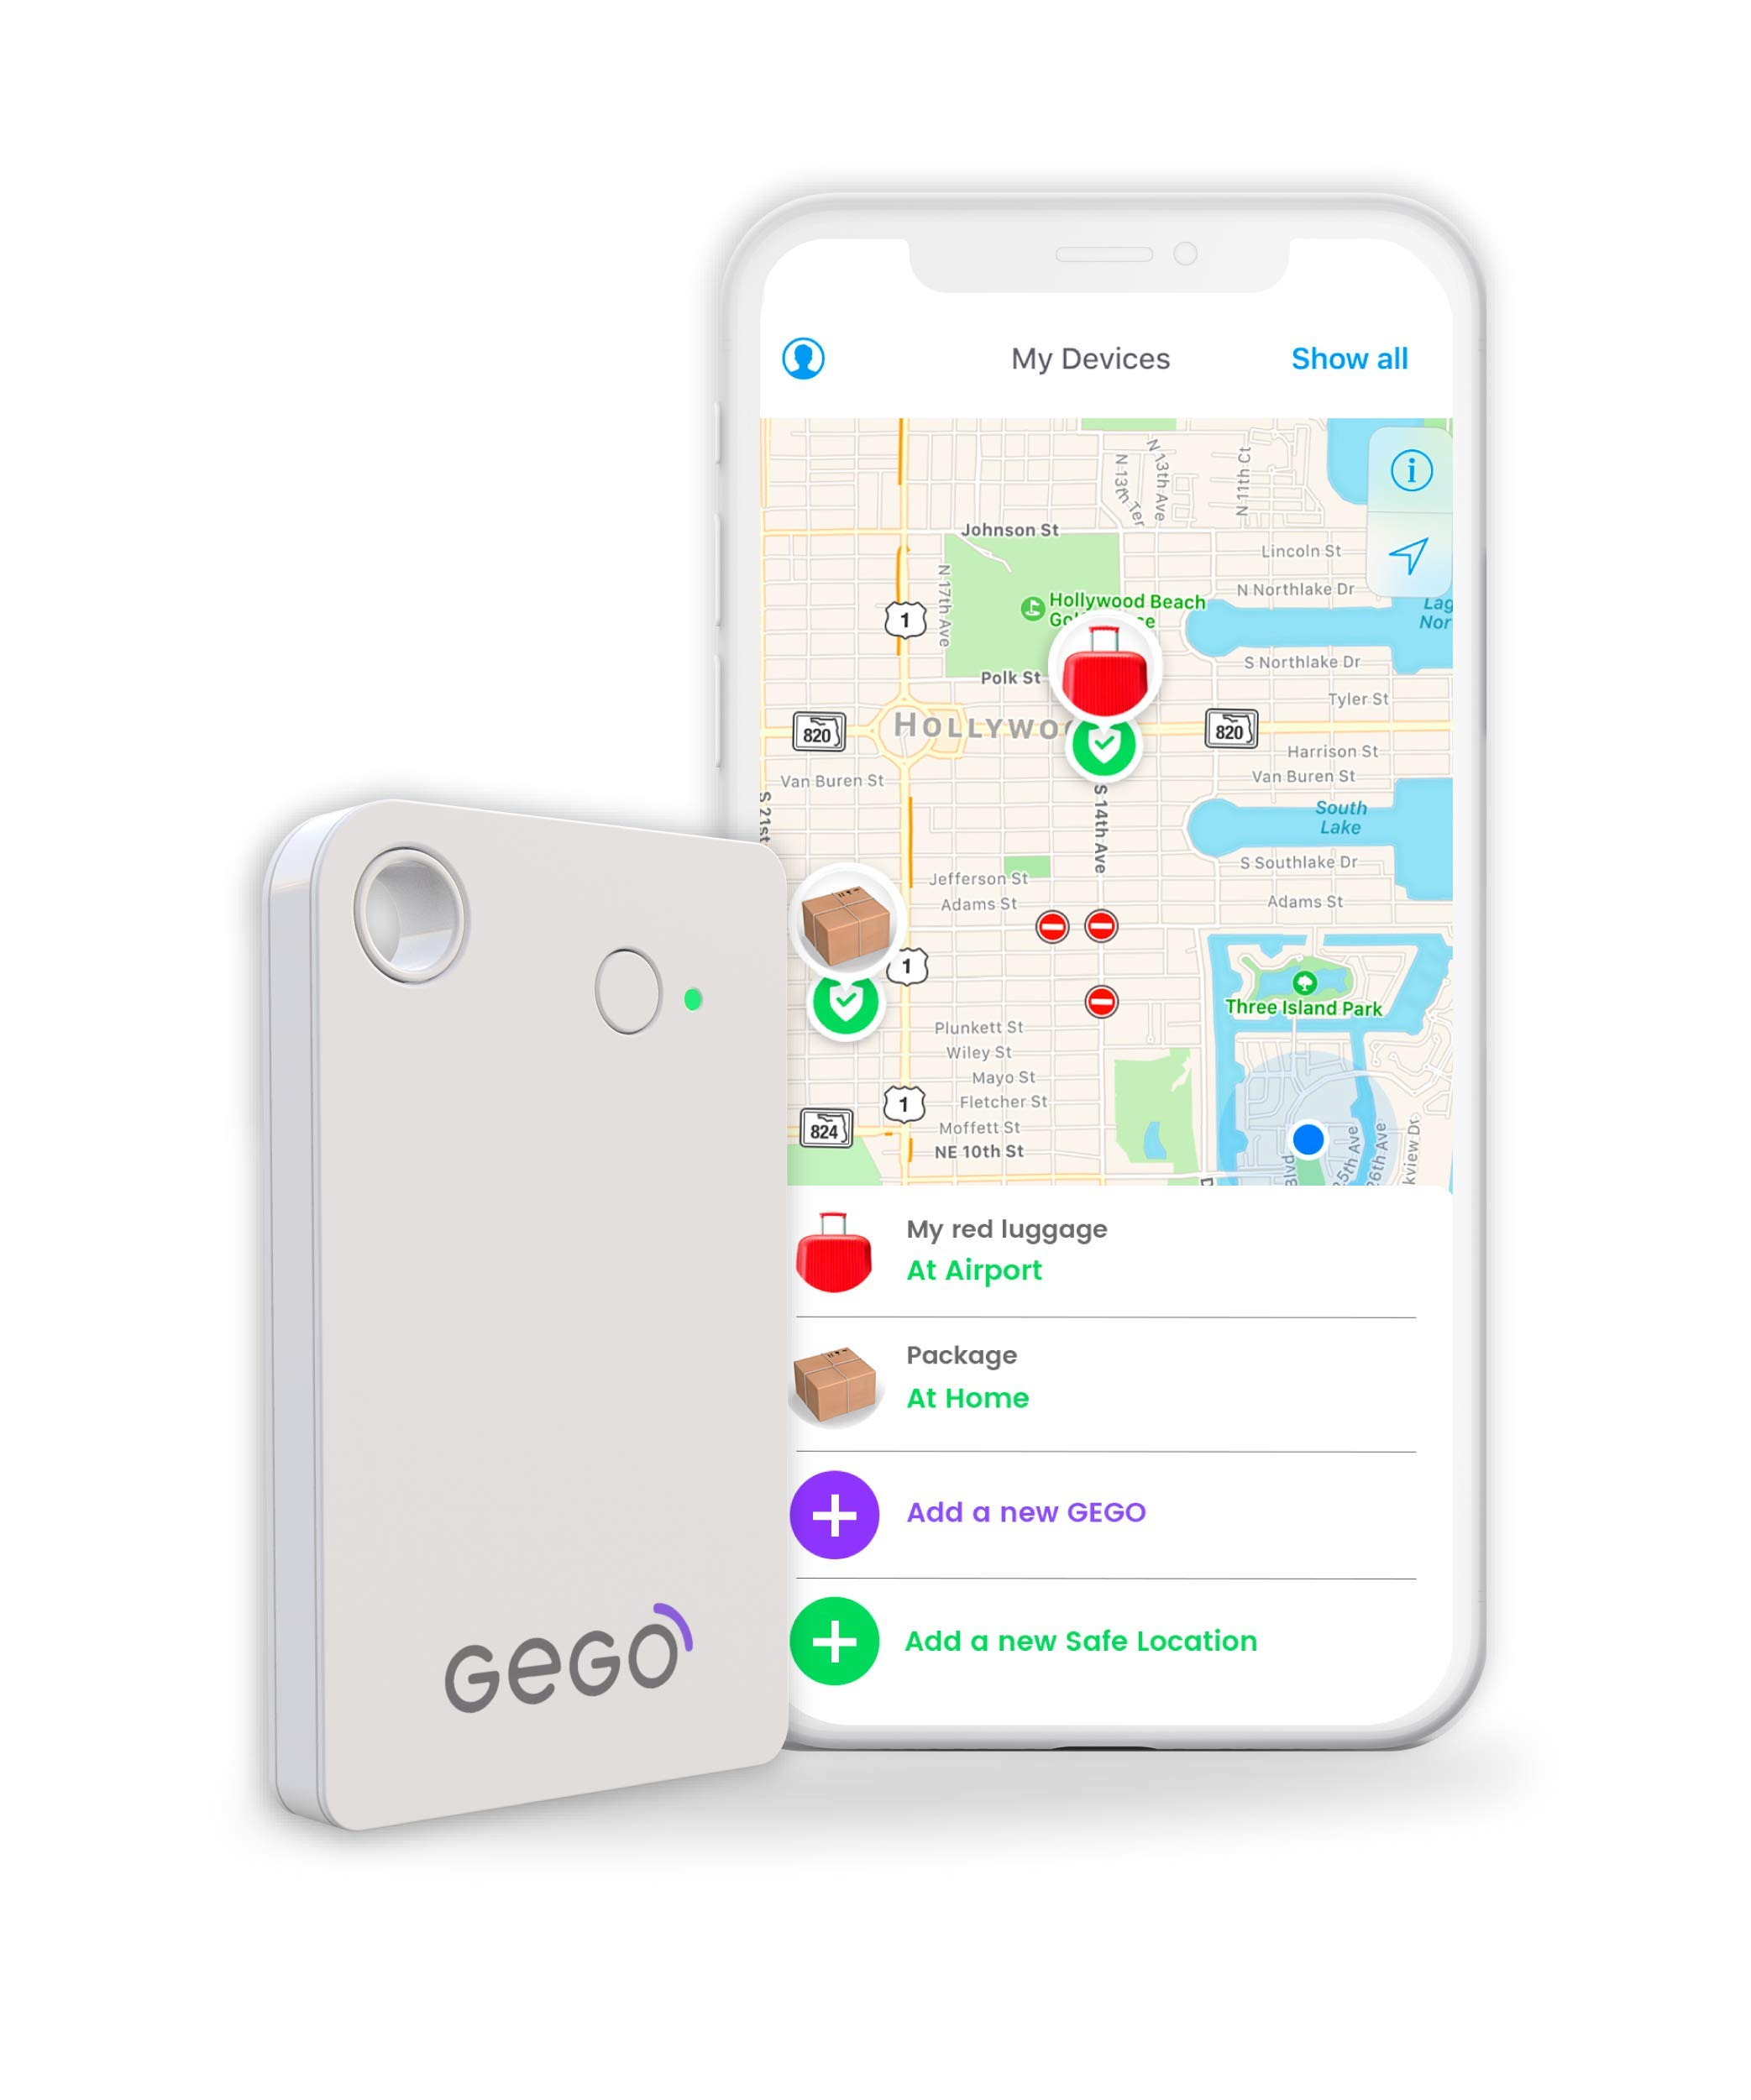 GEGO Worldwide Tracker - Personal Global Real Time Tracking Device Tracks Anything or Anyone Anywhere (3G/Bluetooth with Mobile App) White by GEGO